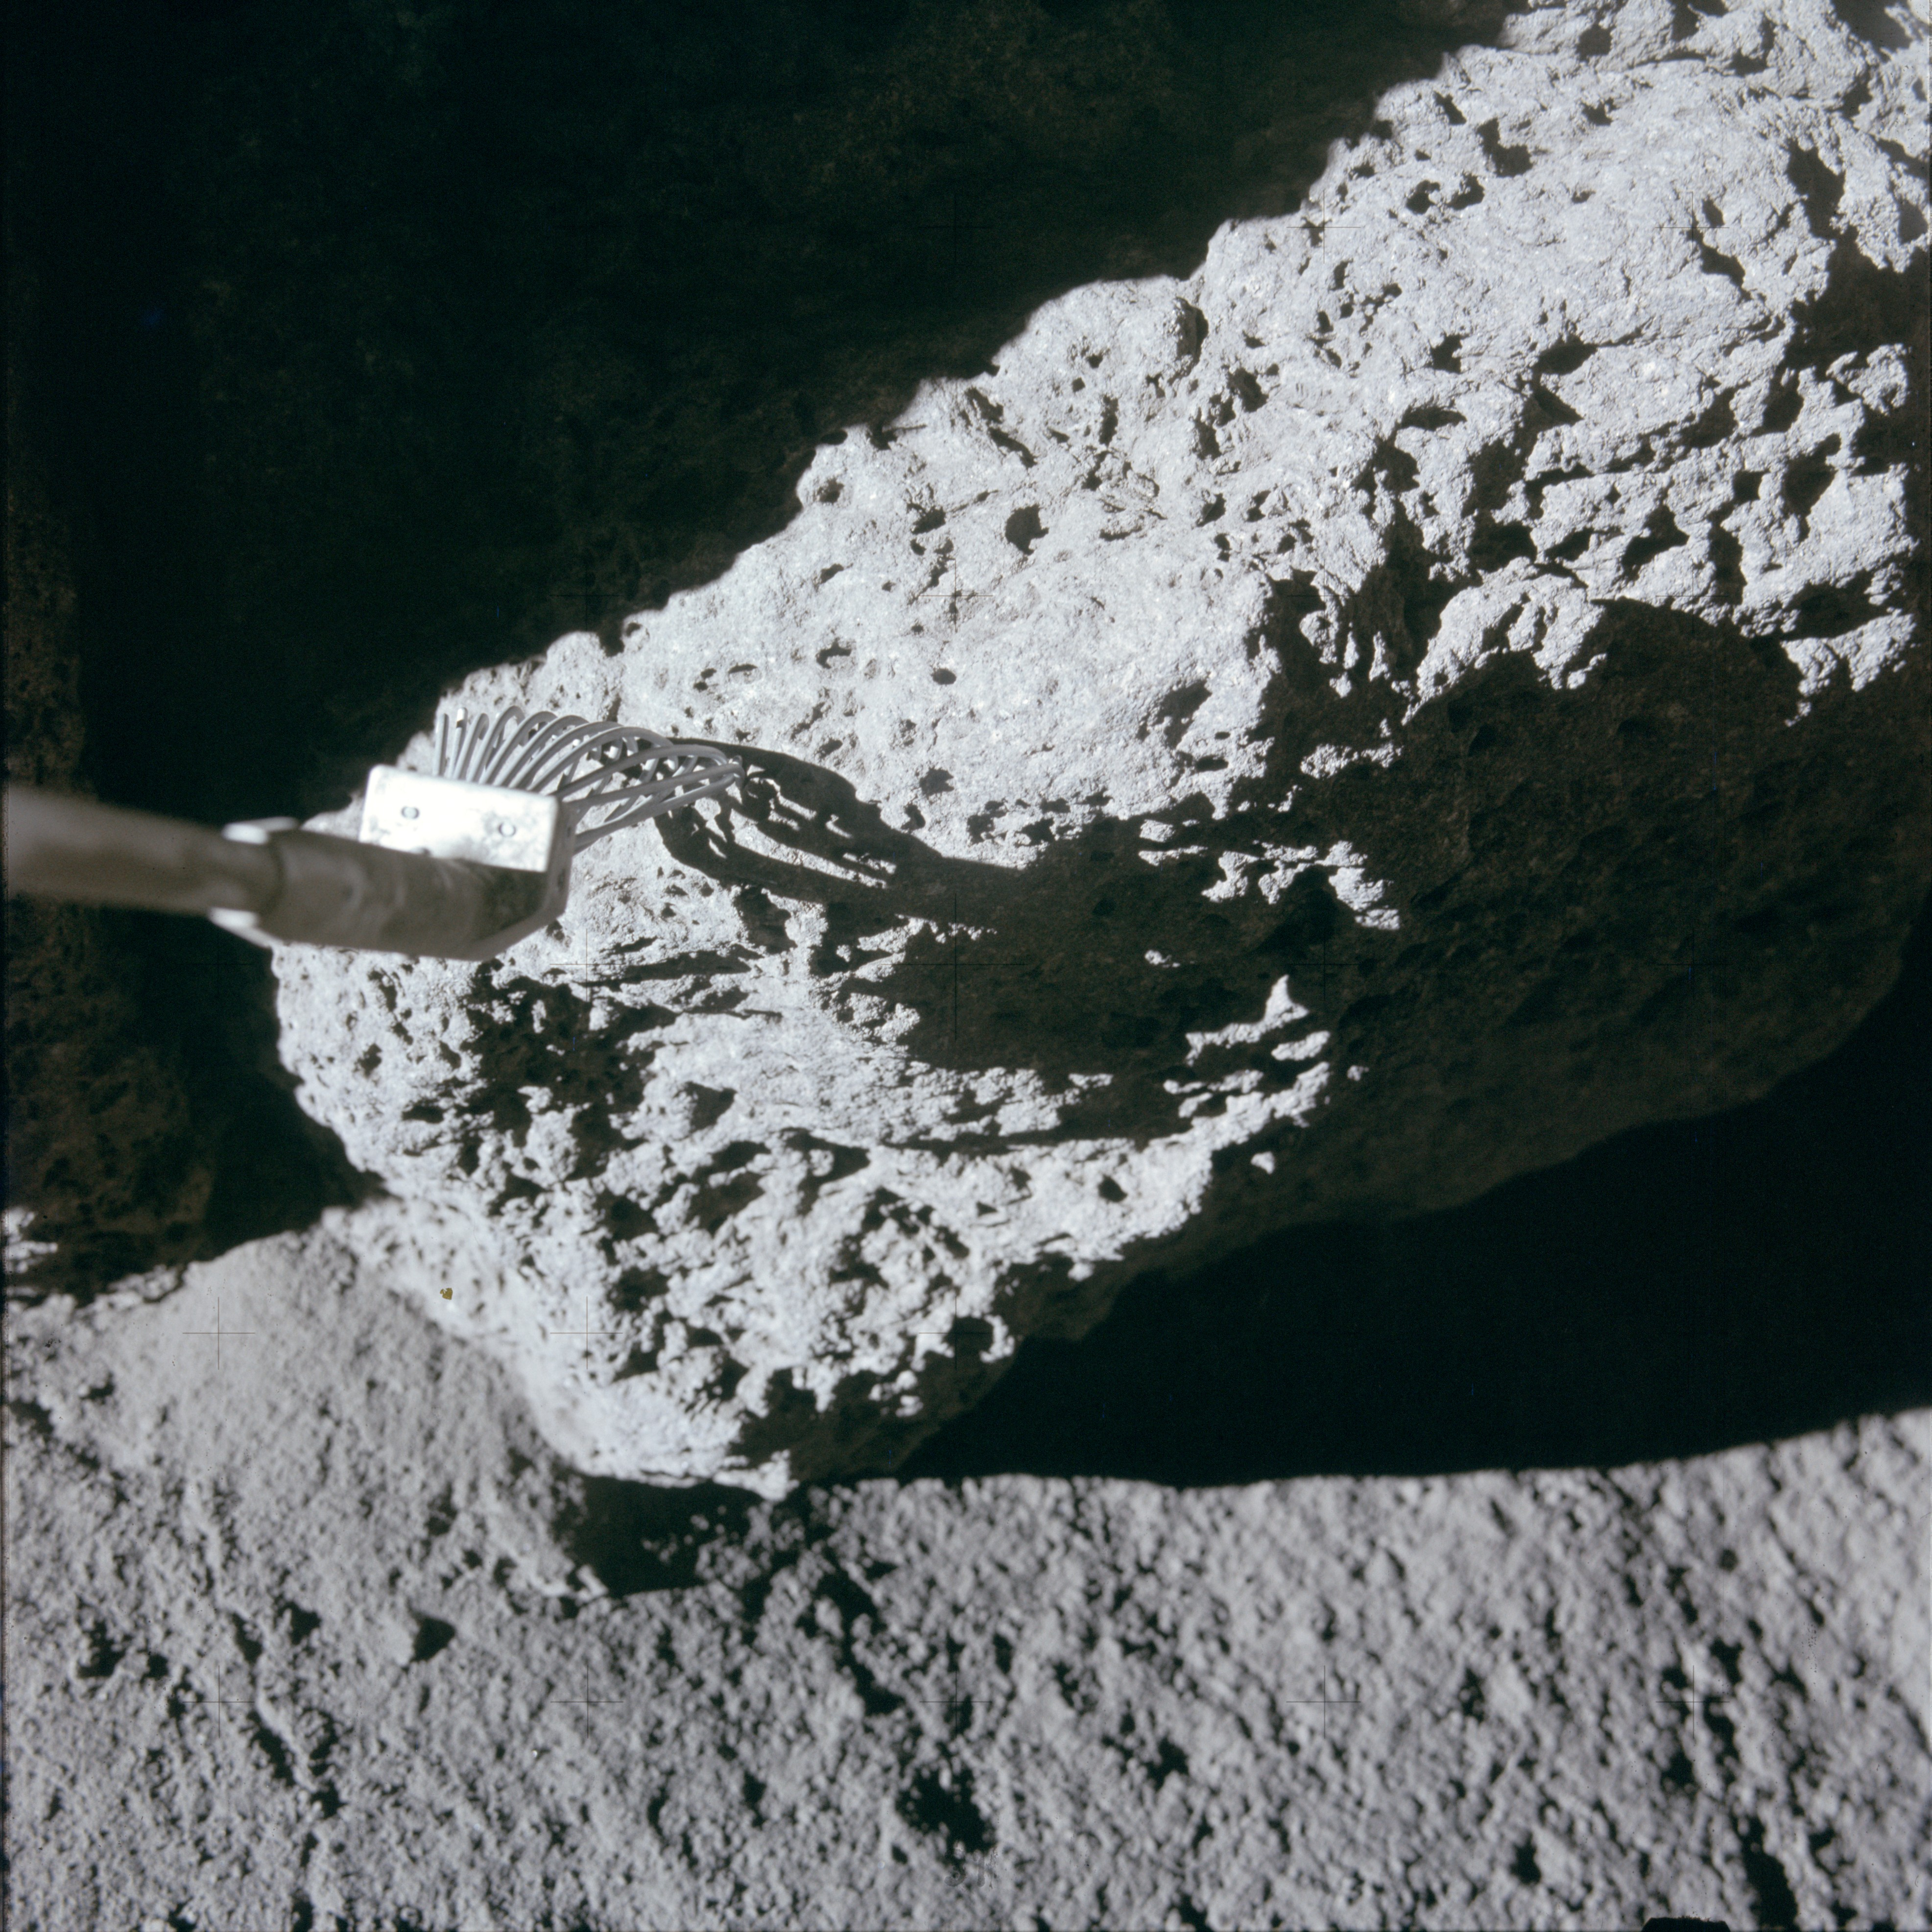 Apollo 15 Mission Image Stereo Pair View Of Station 4 And Smaller Rock Nasa Free Download Borrow And Streaming Internet Archive